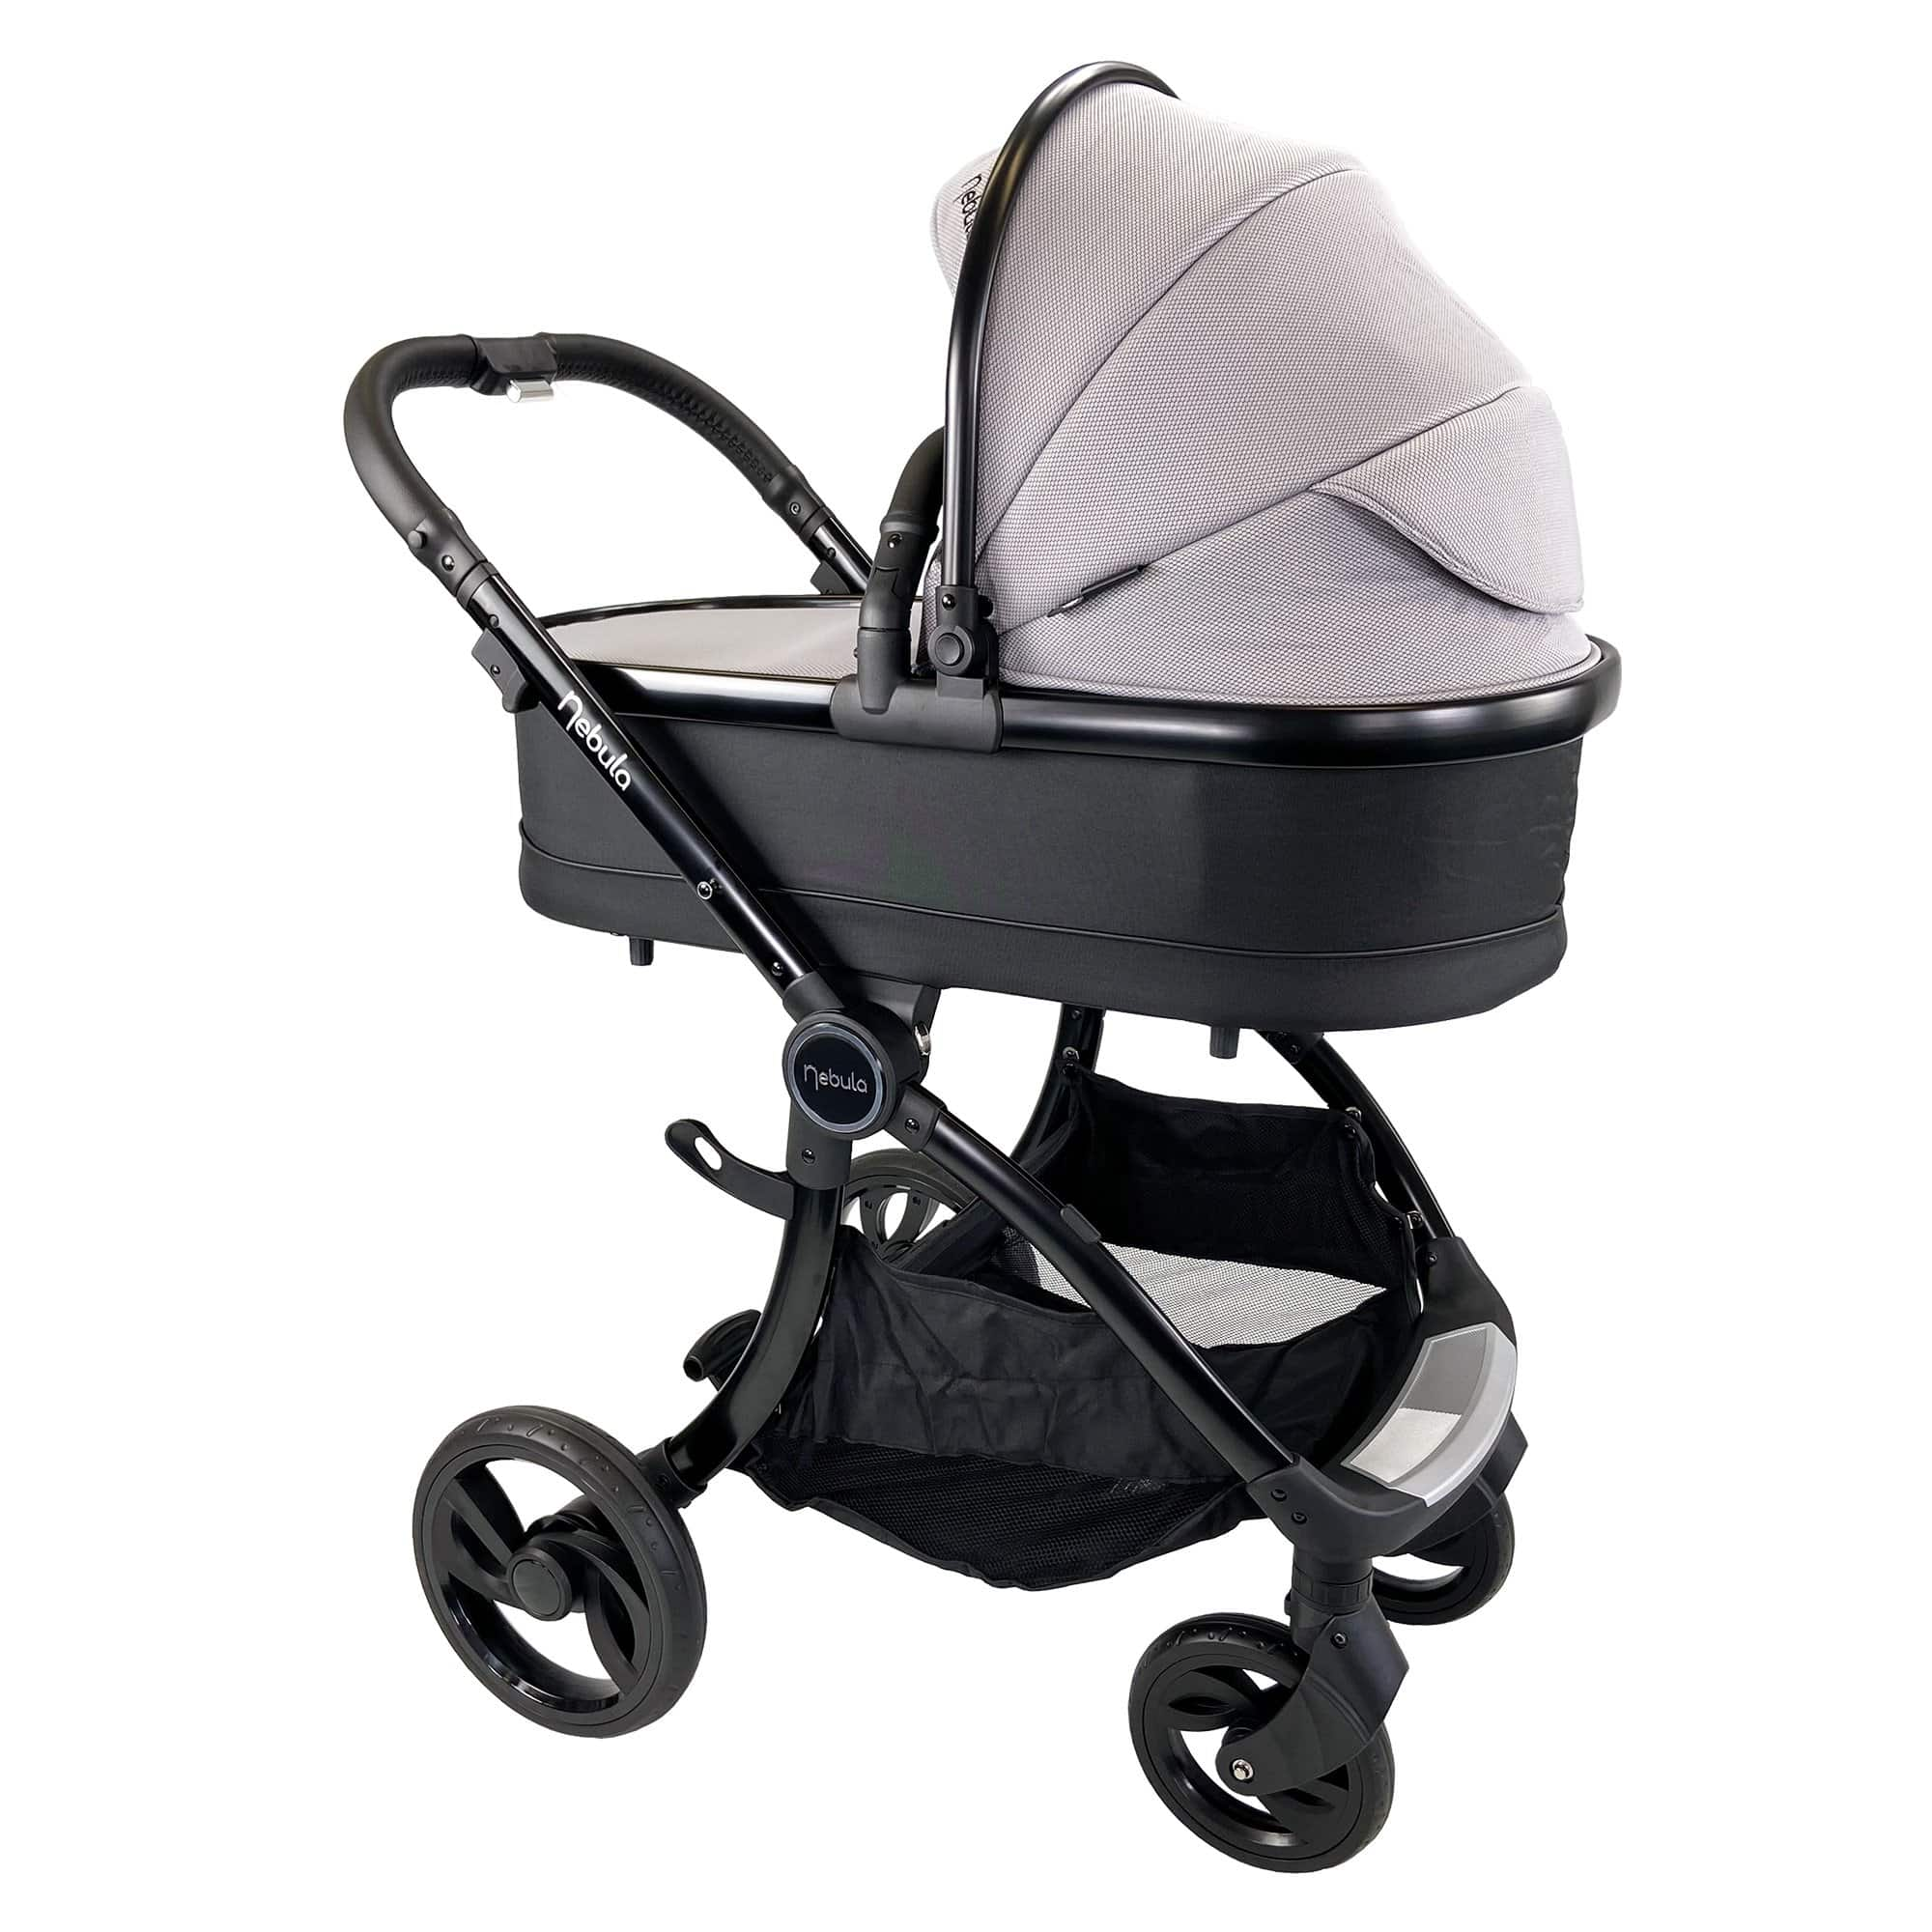 Venture Nebula Cool Grey Stoller with carry cot attached